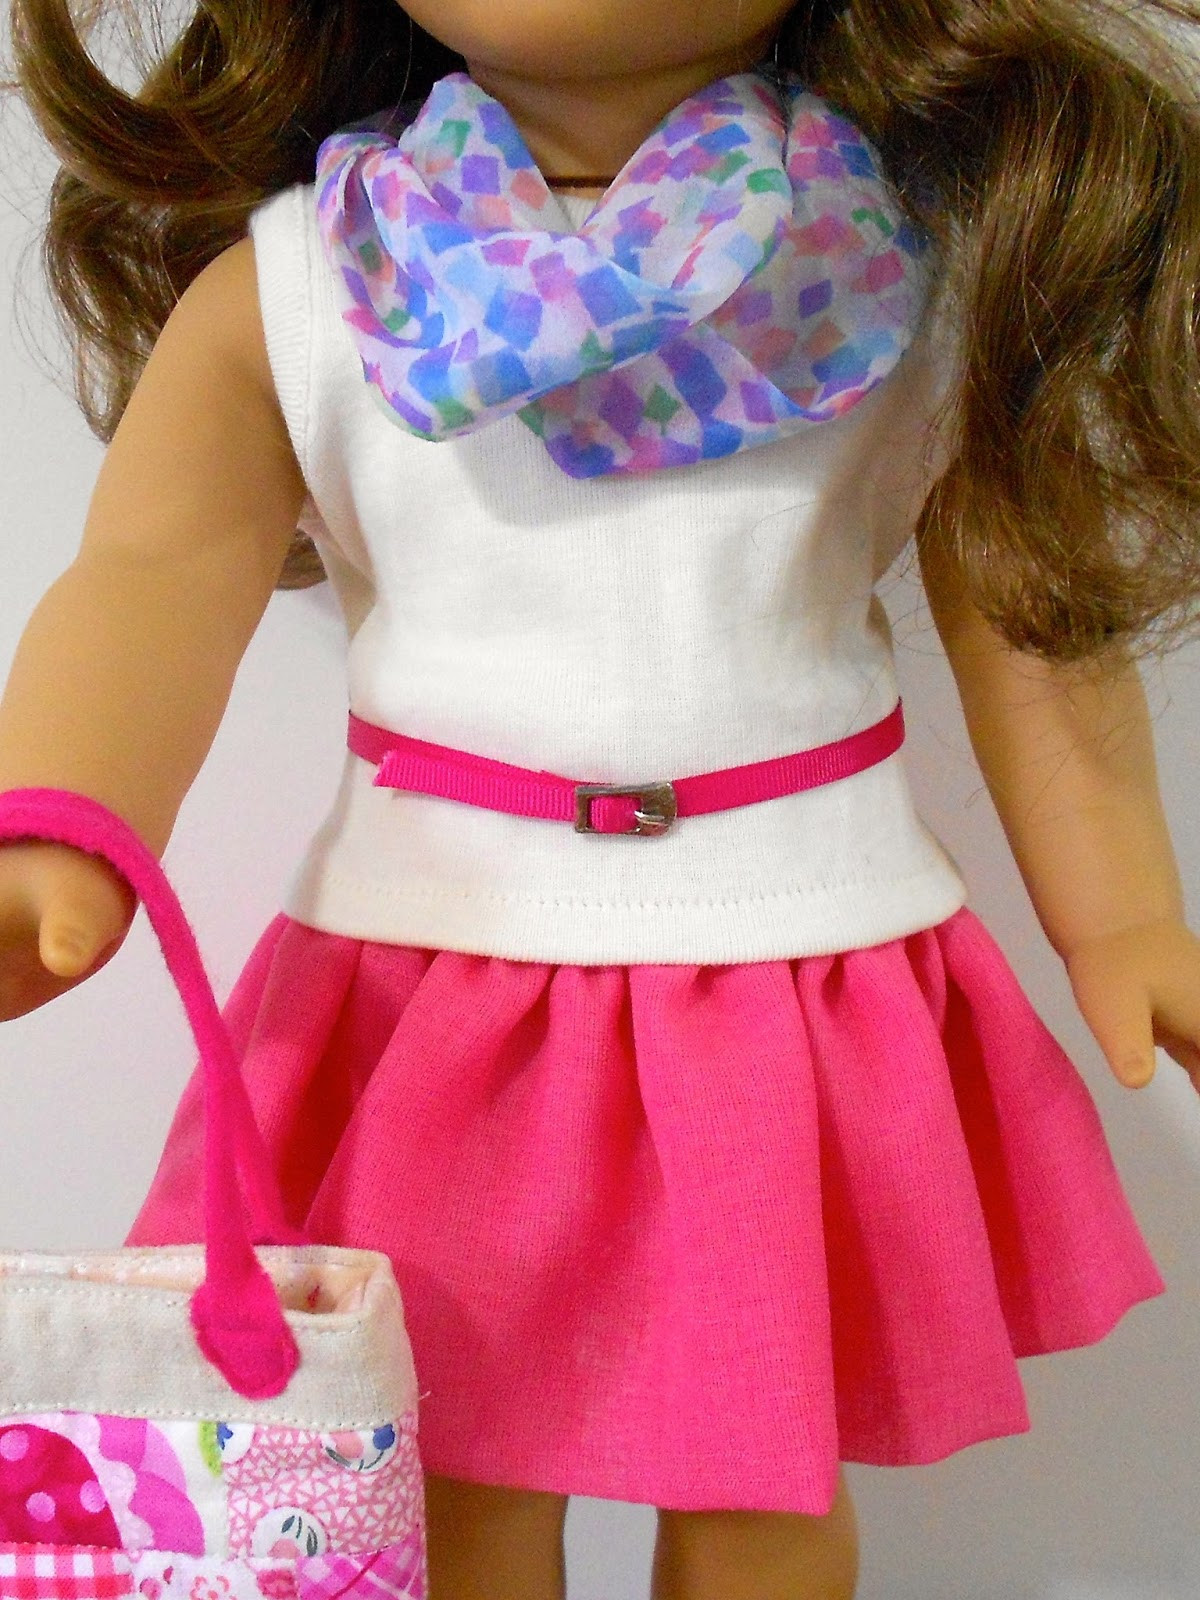 Best Of Doll Clothes Patterns by Valspierssews Free Infinity Free American Girl Doll Clothes Patterns Of Lovely 49 Models Free American Girl Doll Clothes Patterns